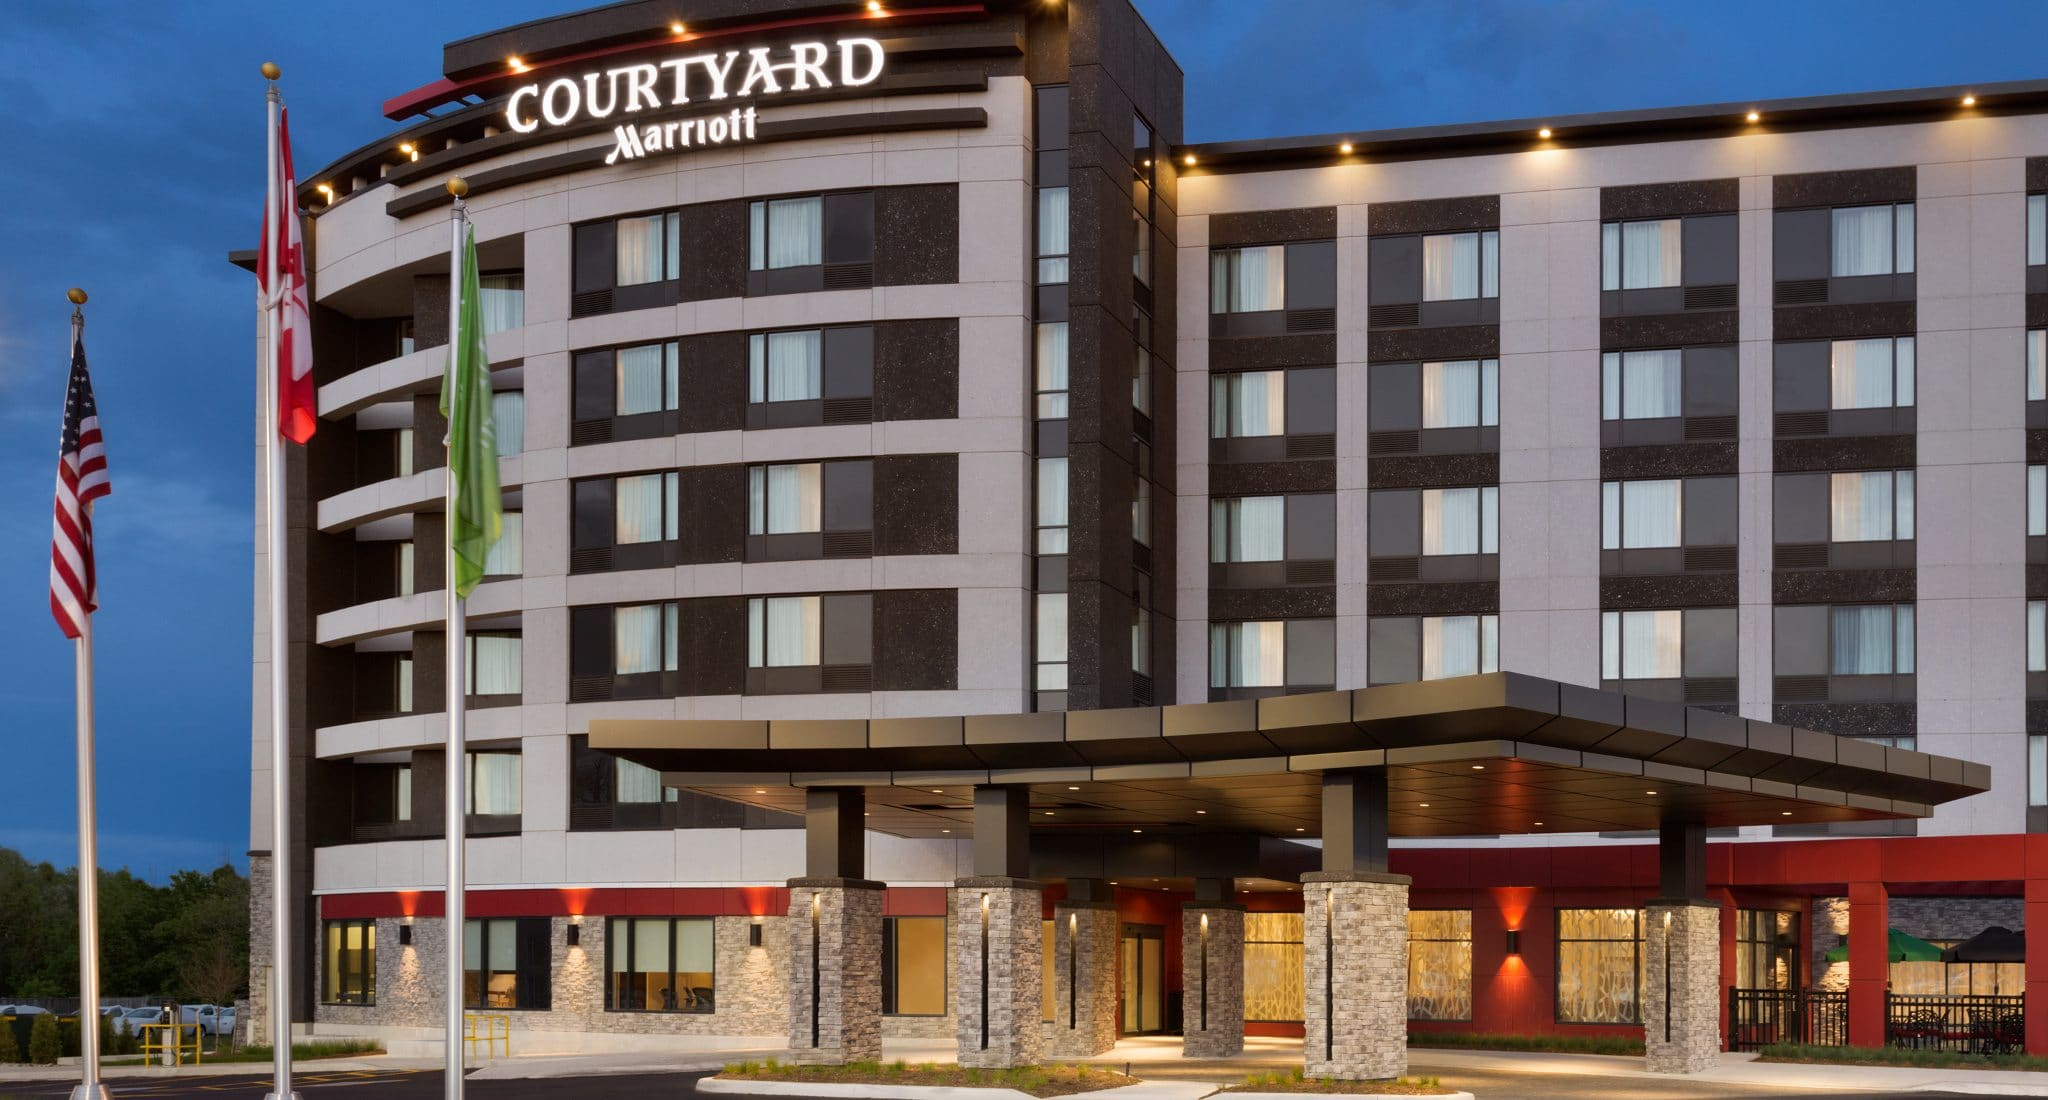 Marriott Corporate Codes - Save Big with These Codes!